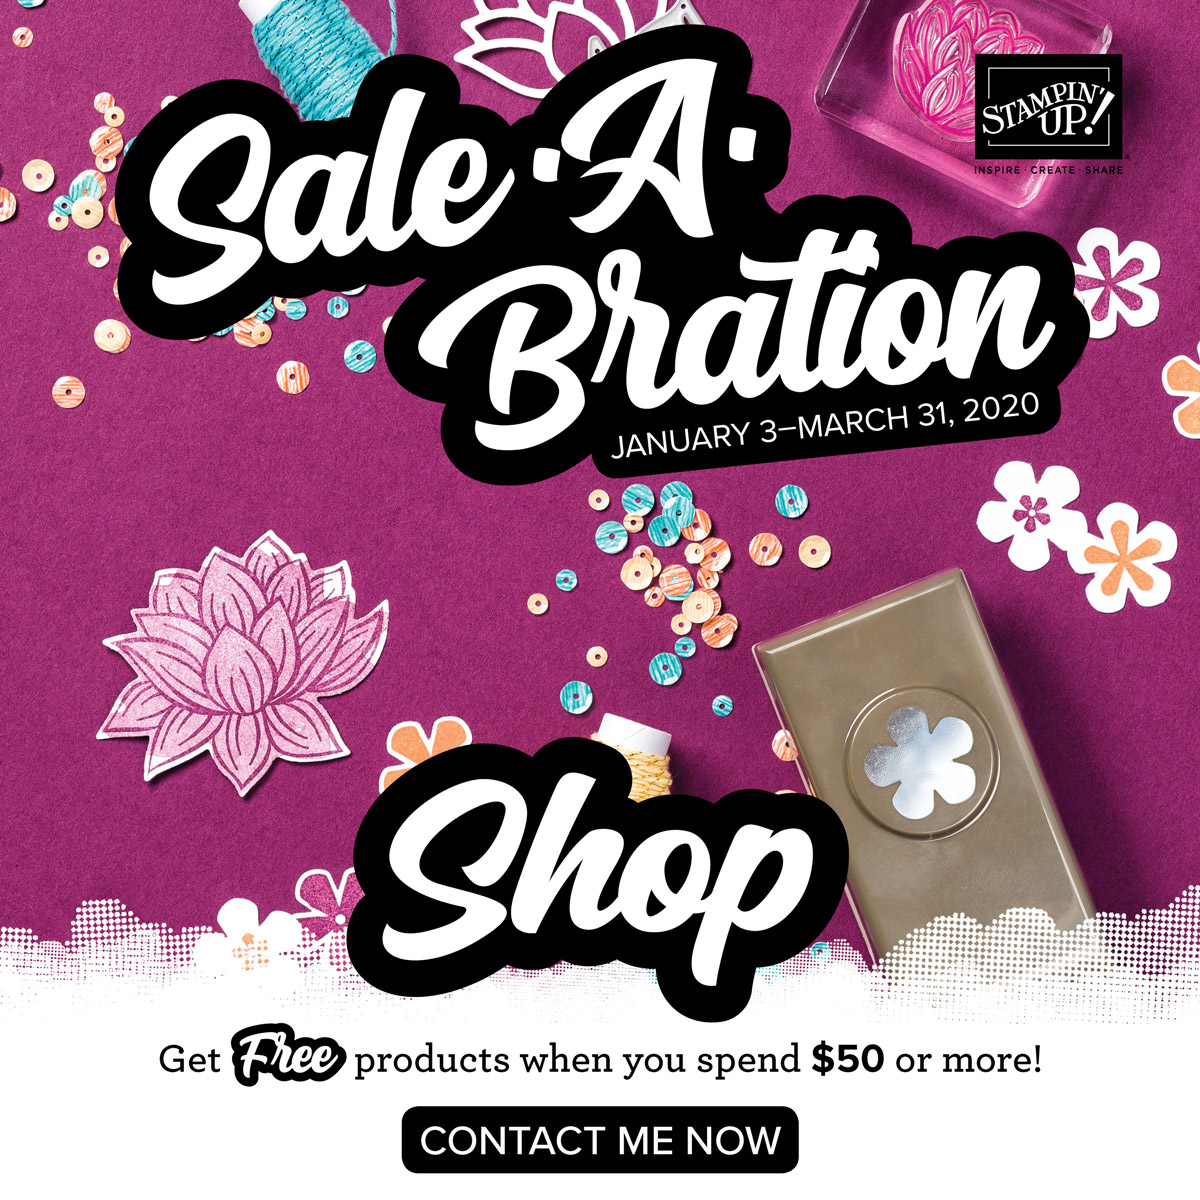 Beginning January 3, 2020 with a min. $50.00 order you can choose 1 item from the Sale-a-bration Brochure for FREE. Details on my blog here: https://wp.me/p59VWq-aF6